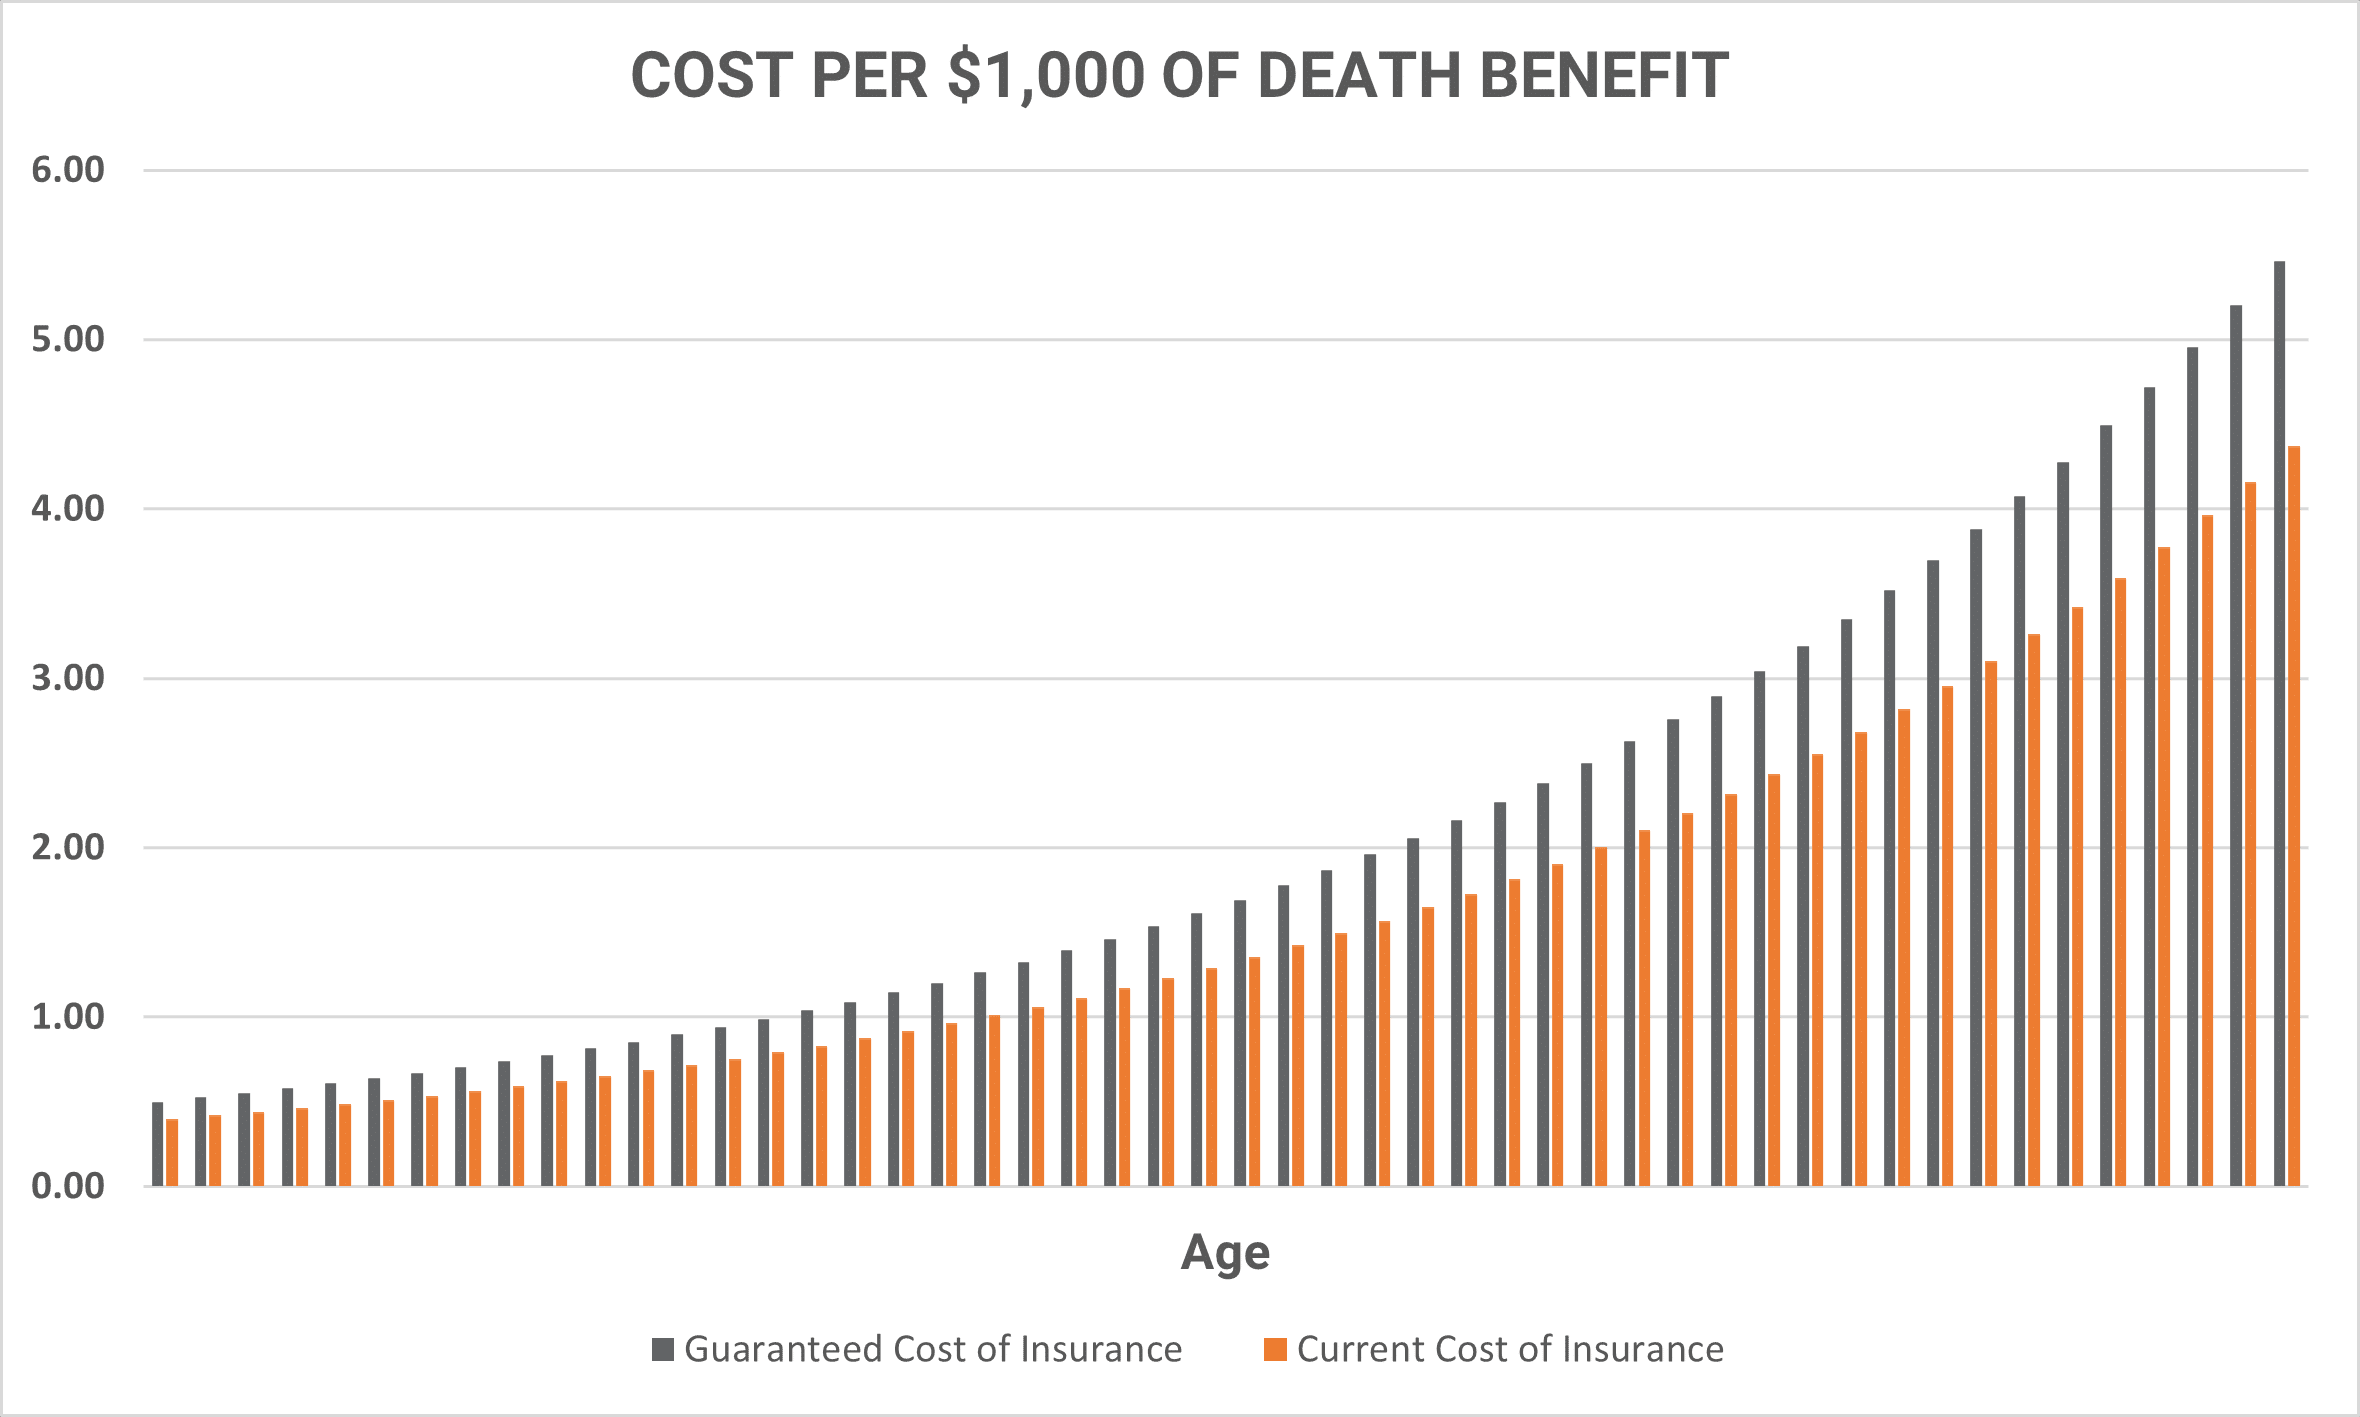 Current Cost of Permanent Life Insurance